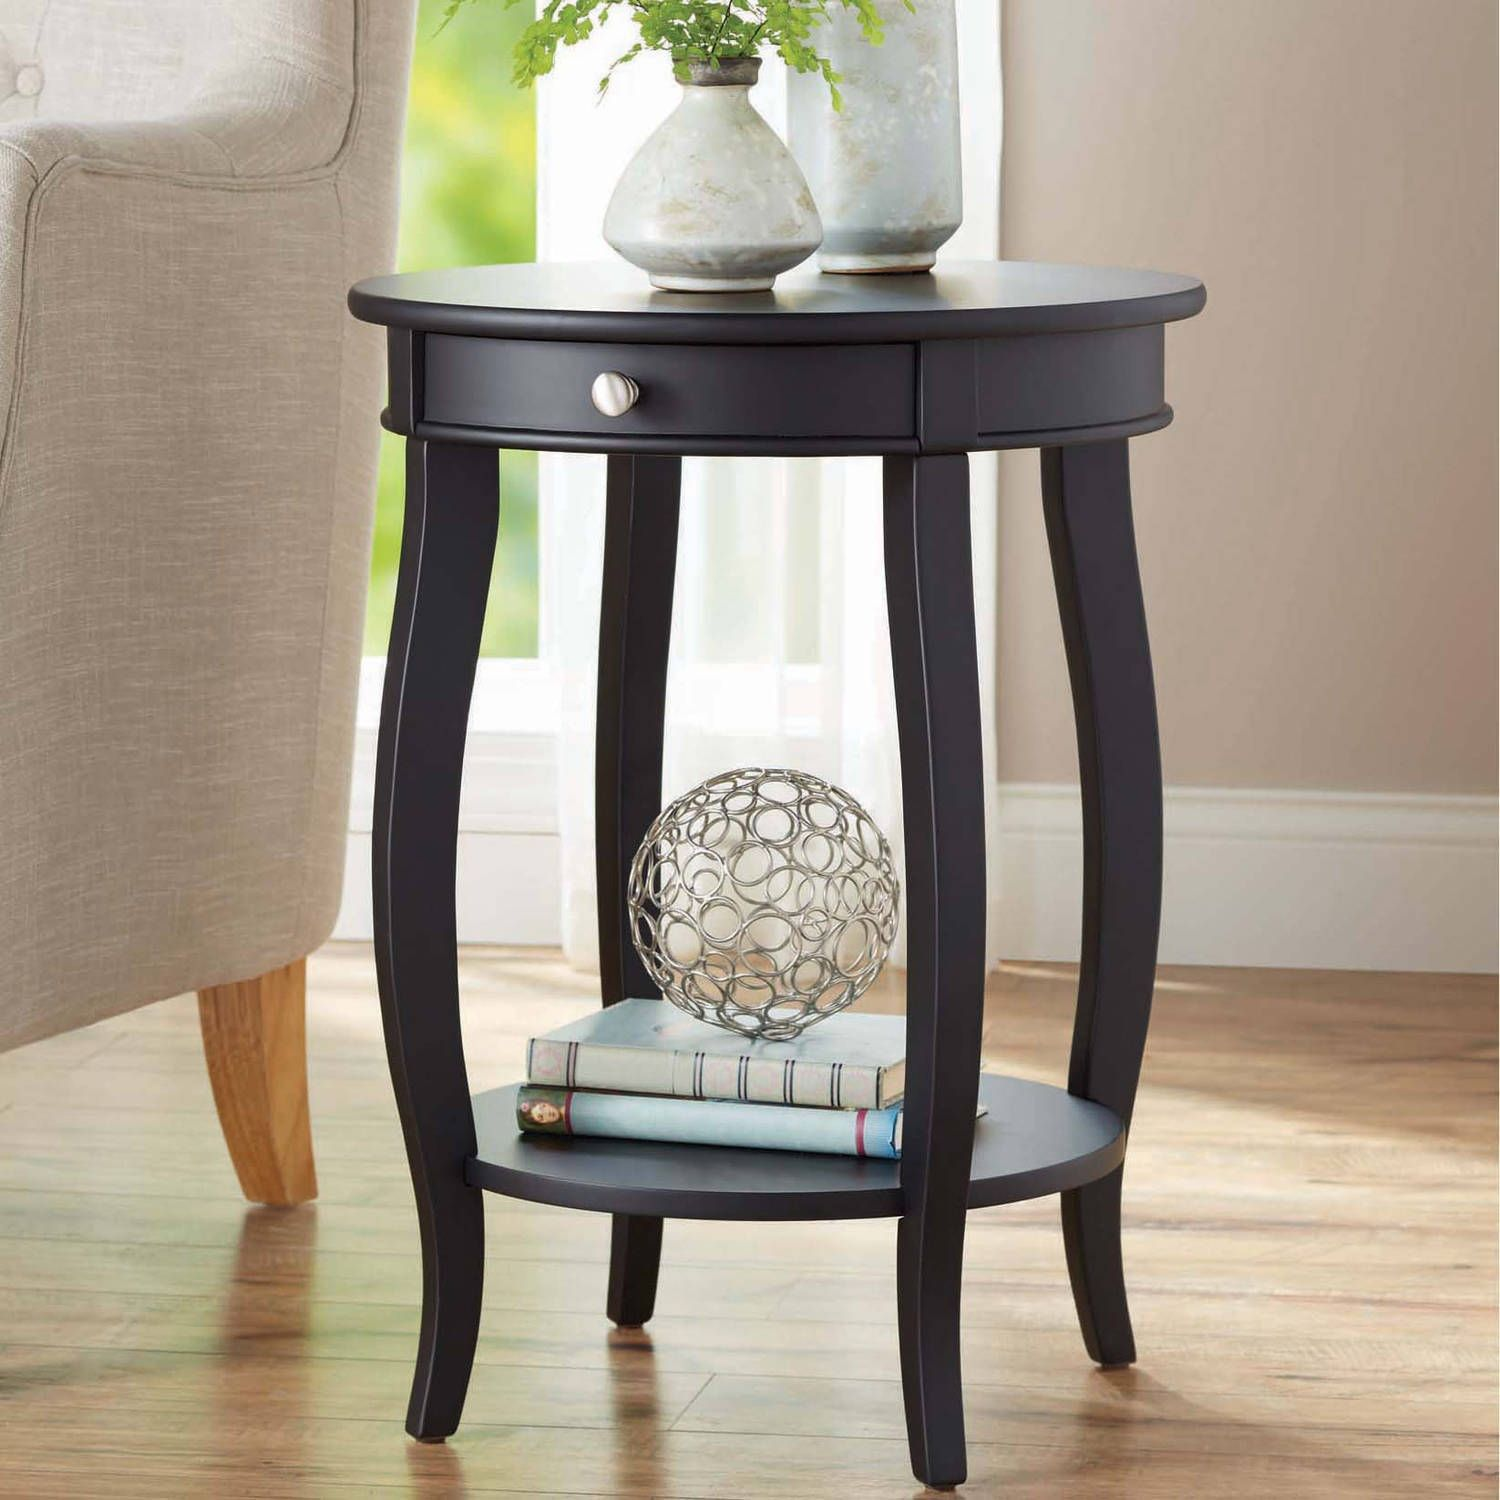 Round end table skirts argharts pinterest skirted